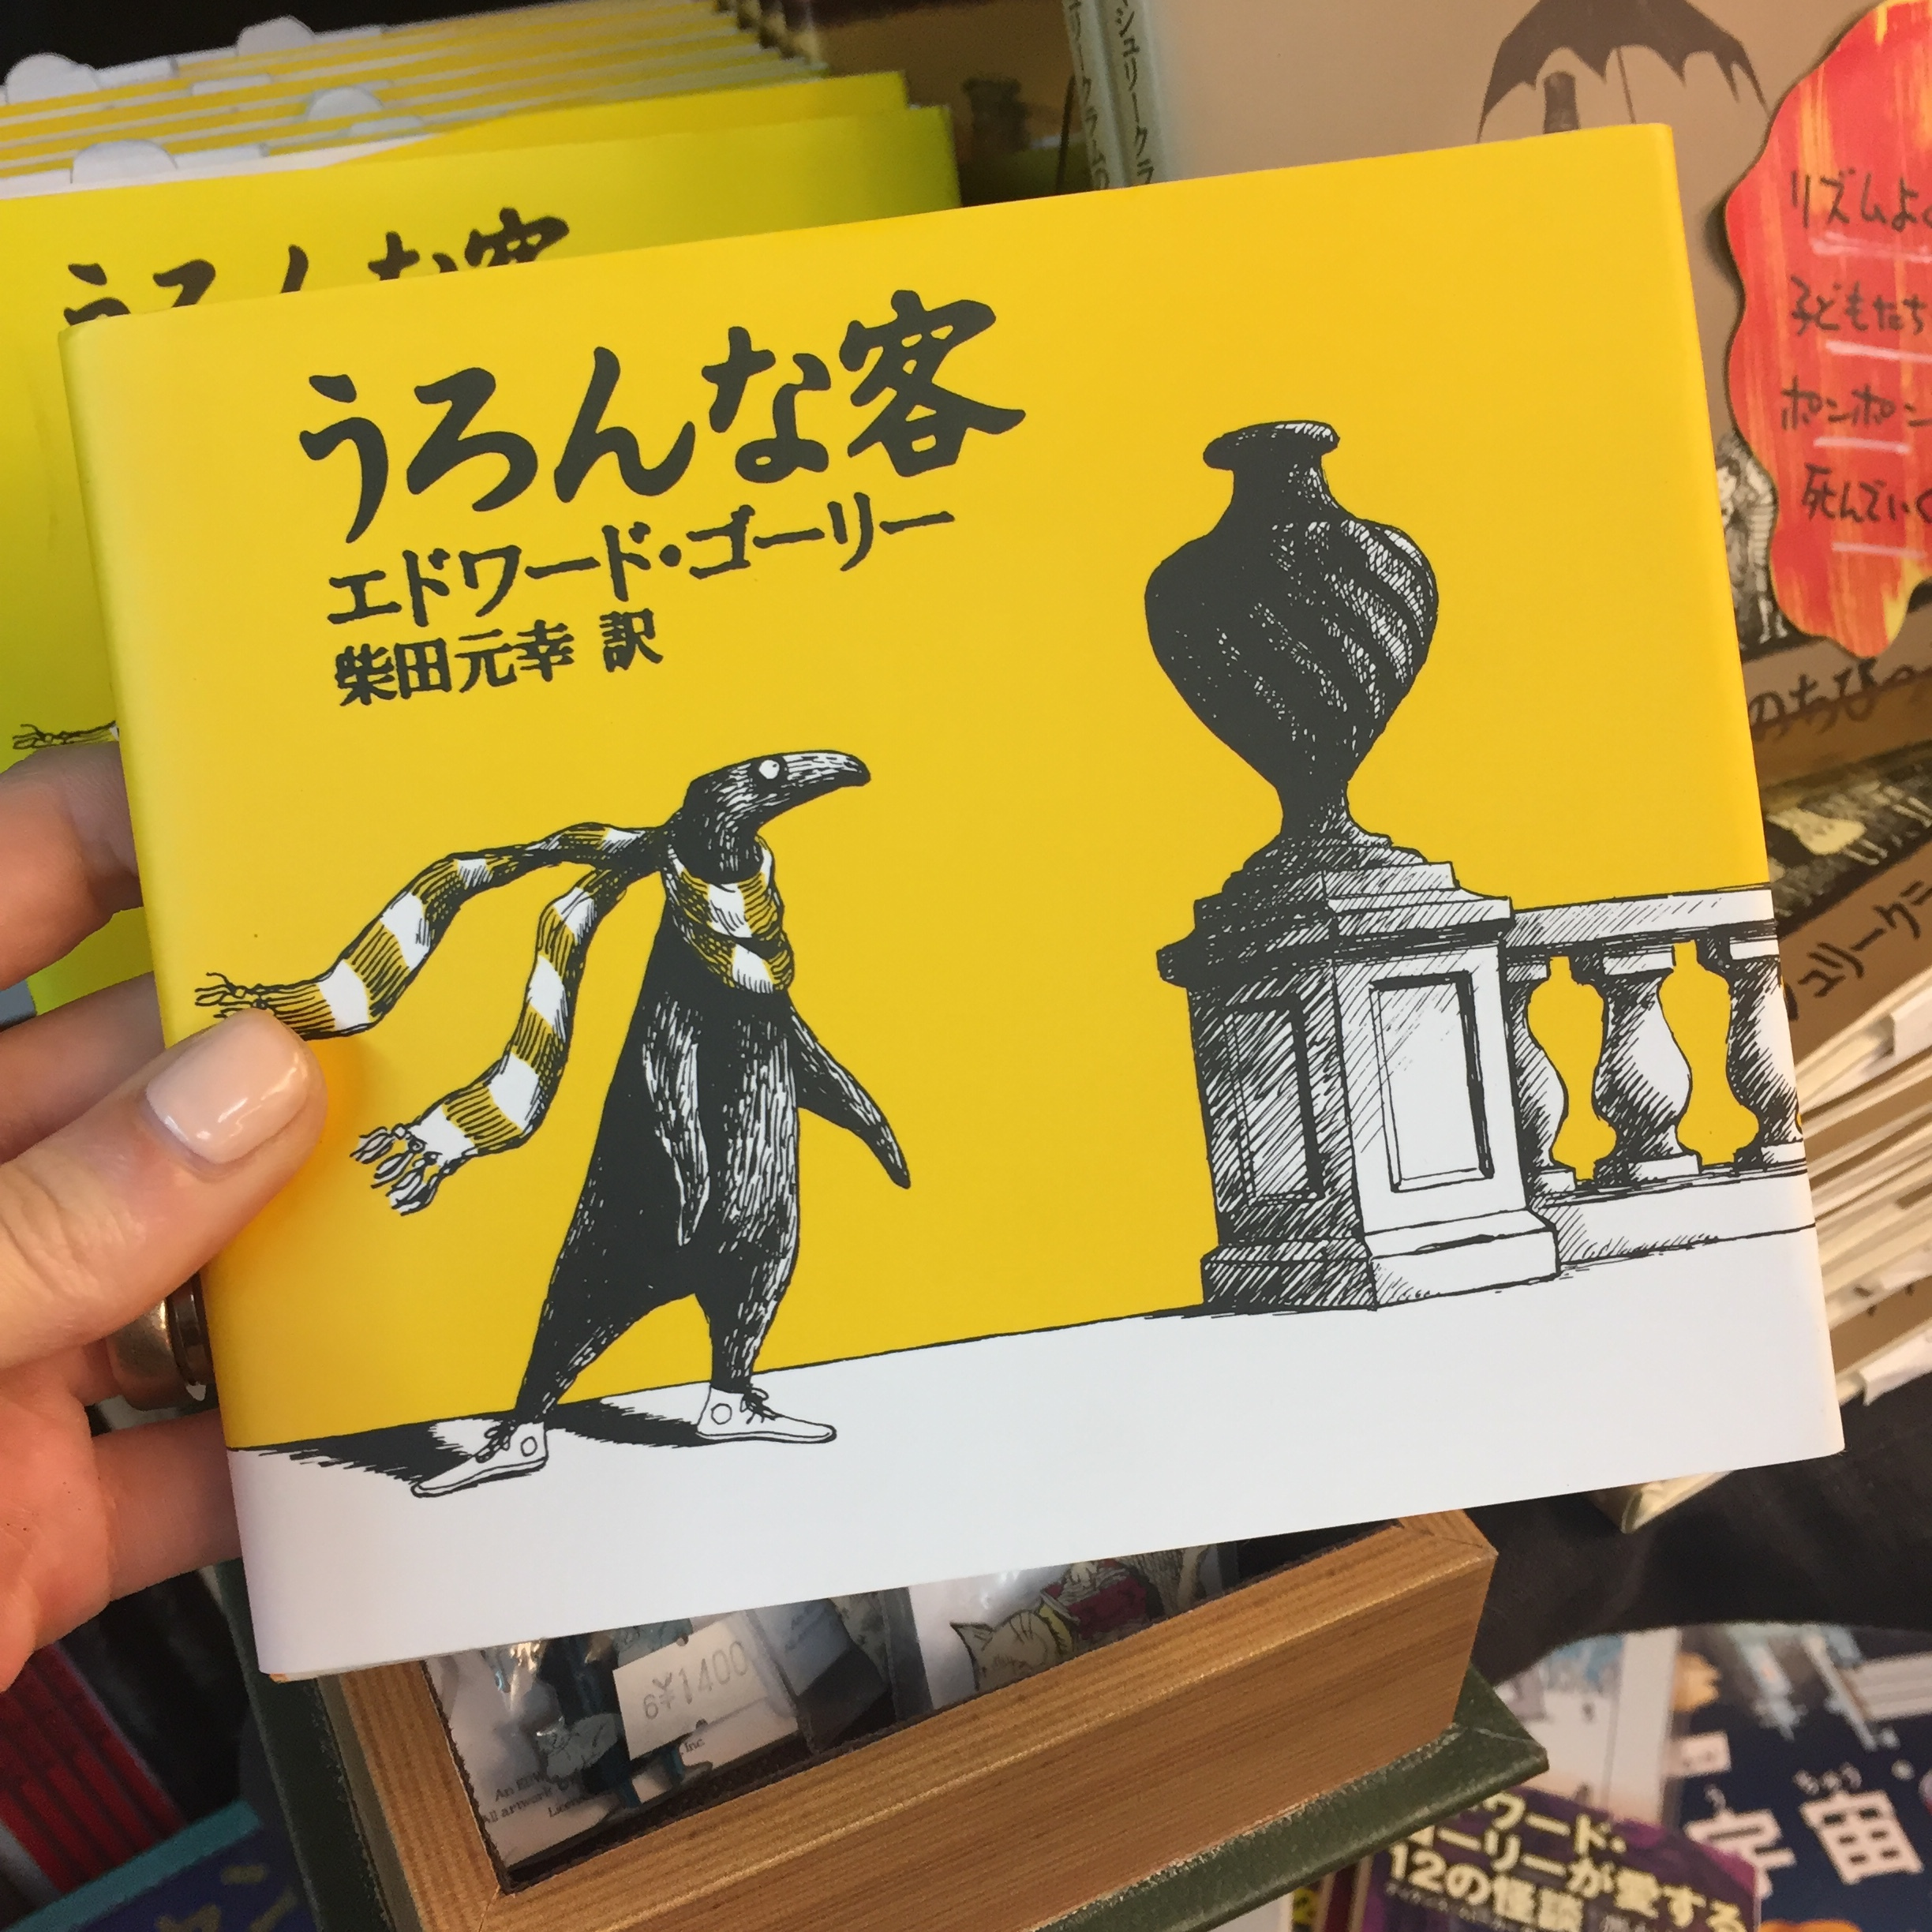 The Doubtful Guest by Edward Gorey in Japanese... I love this book.